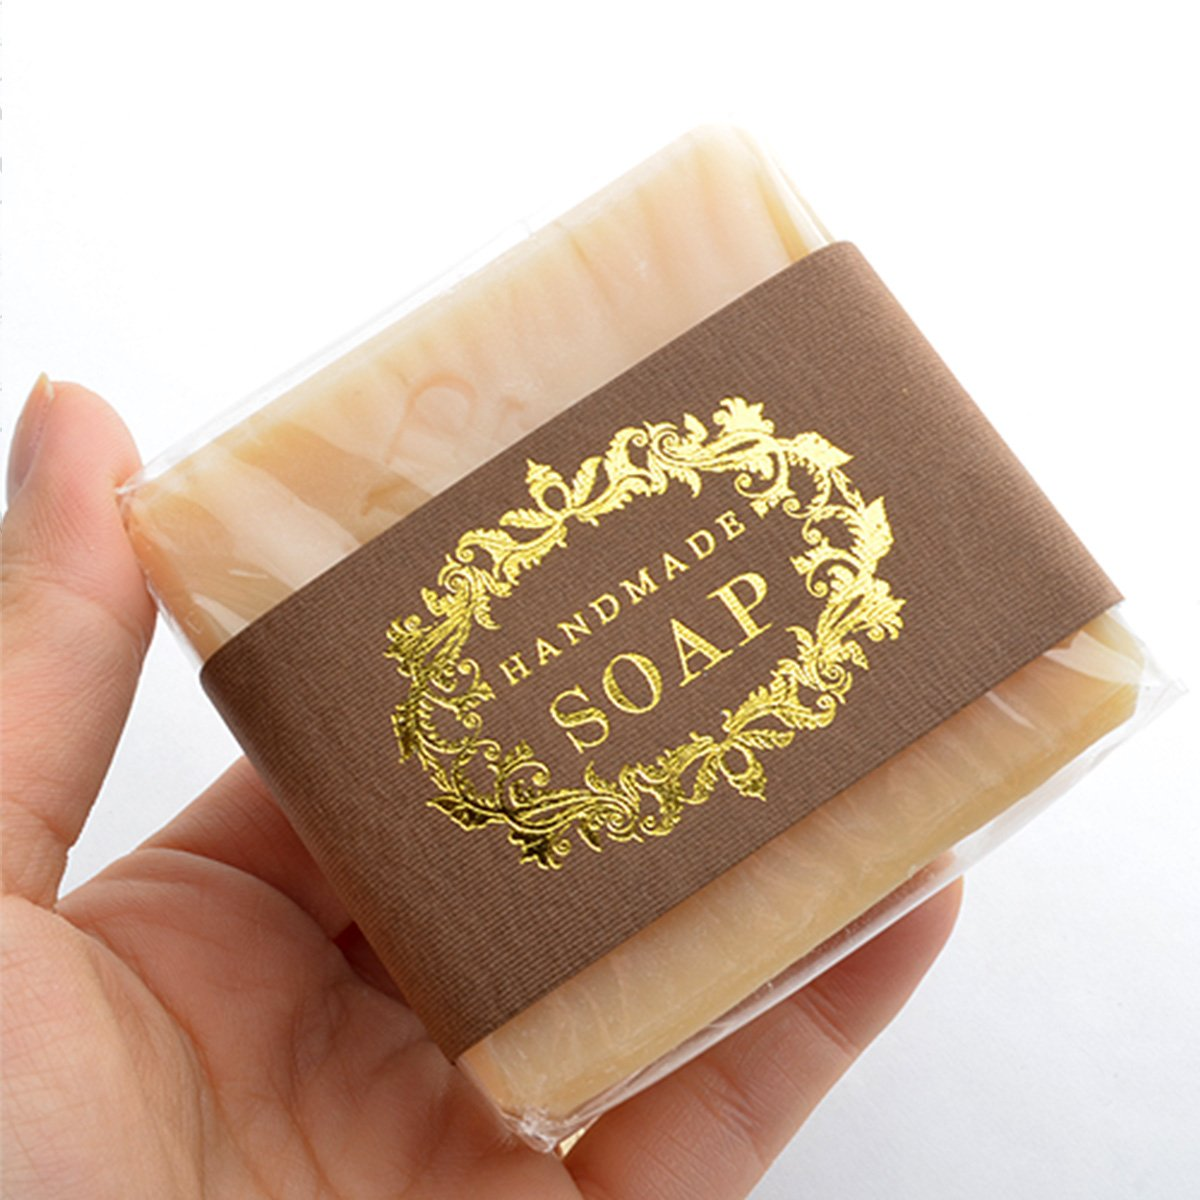 CHAWOORIM Soap Wrapping Paper Tape Labels Soap Packaging Materials for Hand Made Soap Lotion Bars Soap Bars Bath Bombs Boxes Bags 20sheets Gold Peel Hand ...